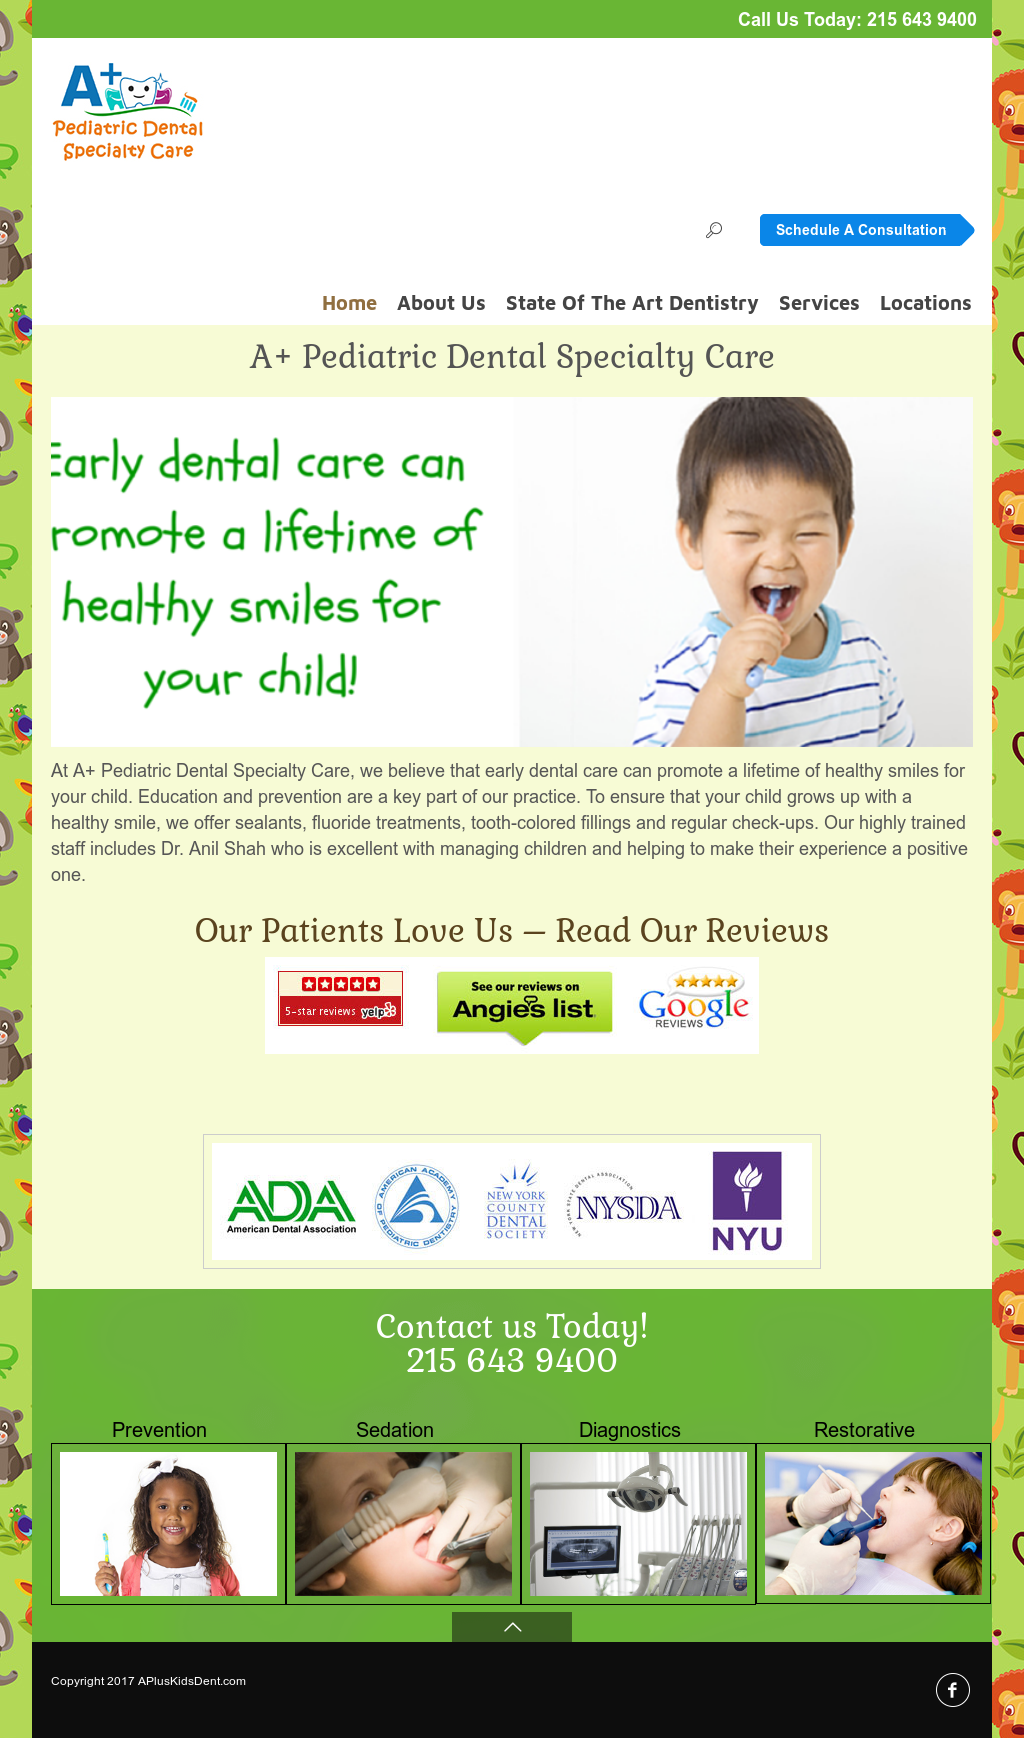 A+ Pediatric Dental Specialty Care, P c Competitors, Revenue